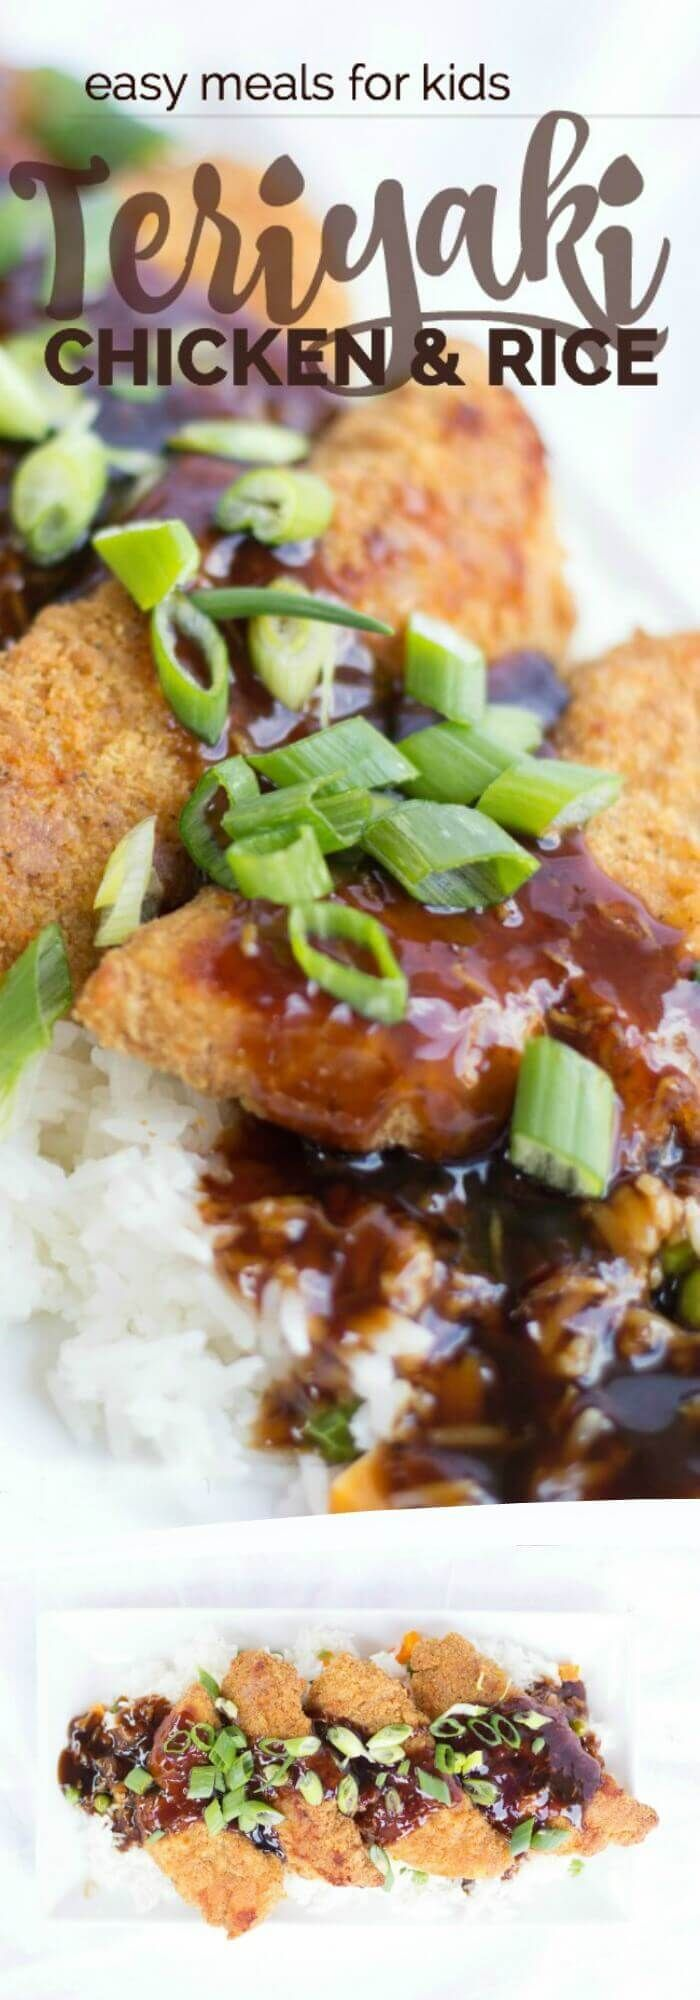 Your whole family will love this Easy Teriyaki Chicken & Rice Recipe!